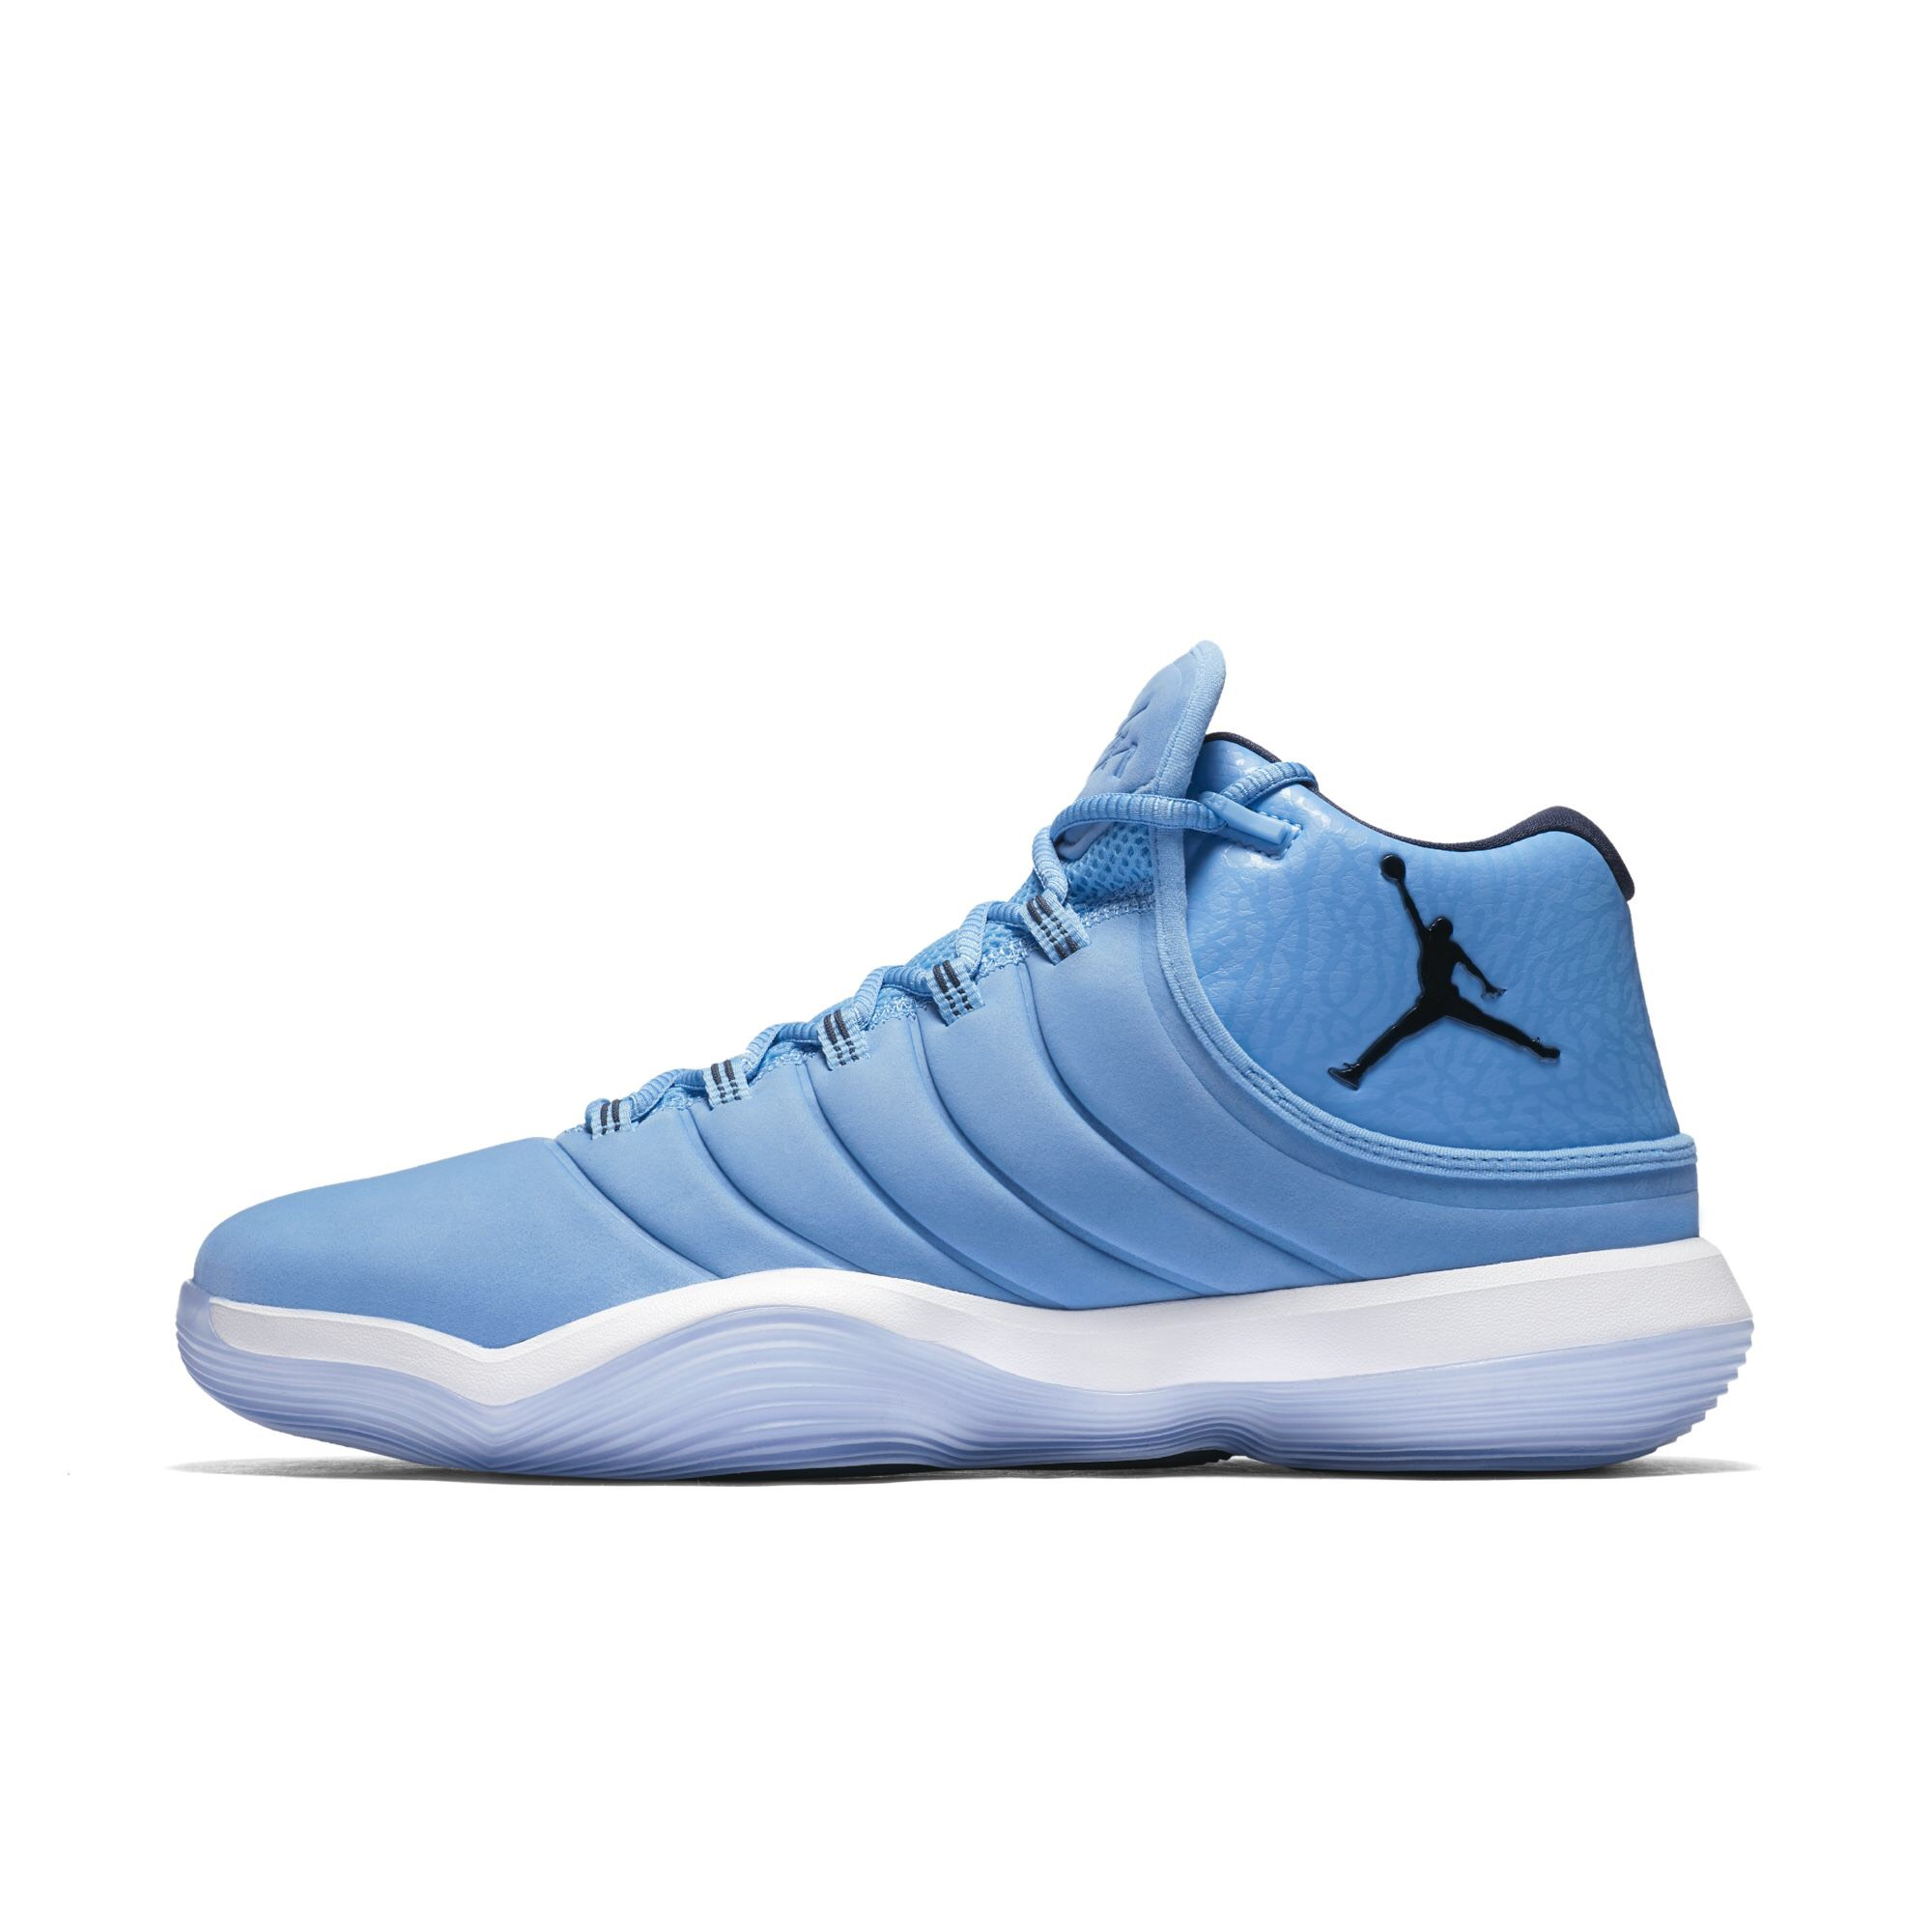 d2e805288937 The Jordan Super.Fly 2017 Shows Itself in This UNC-Friendly Colorway ...